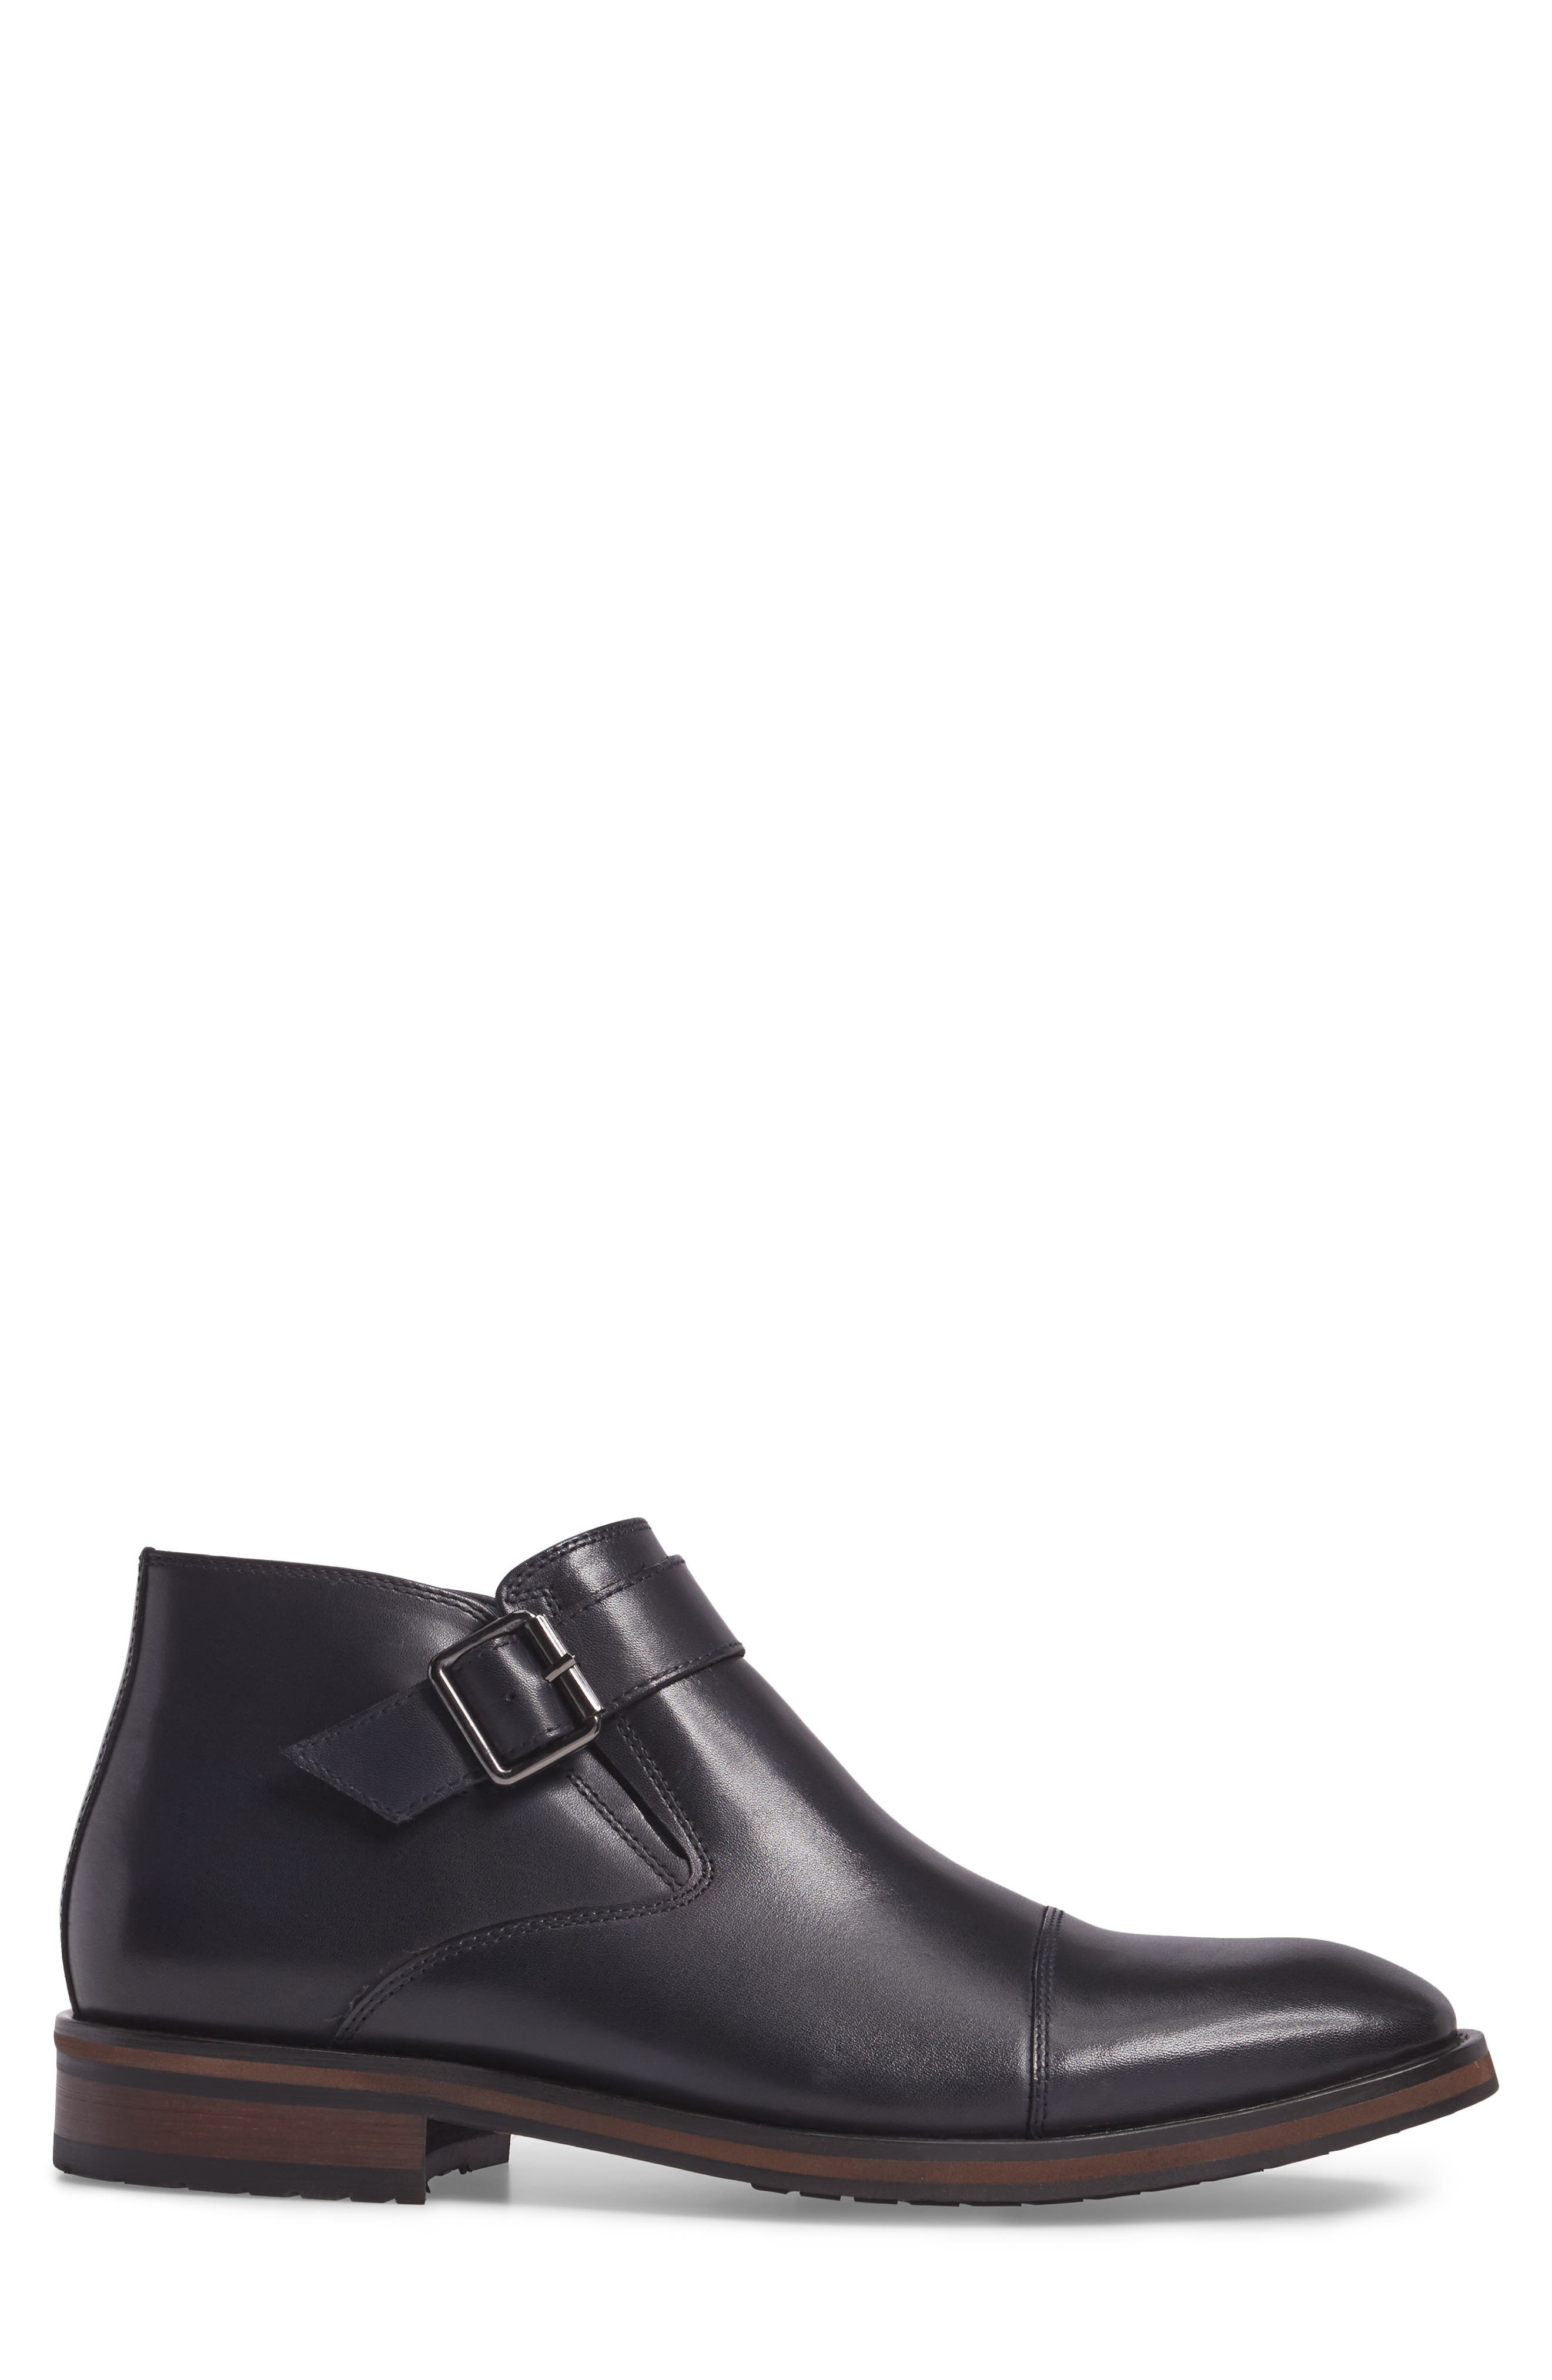 Alternate Image 3  - Zanzara Lami Monk Strap Boot (Men)